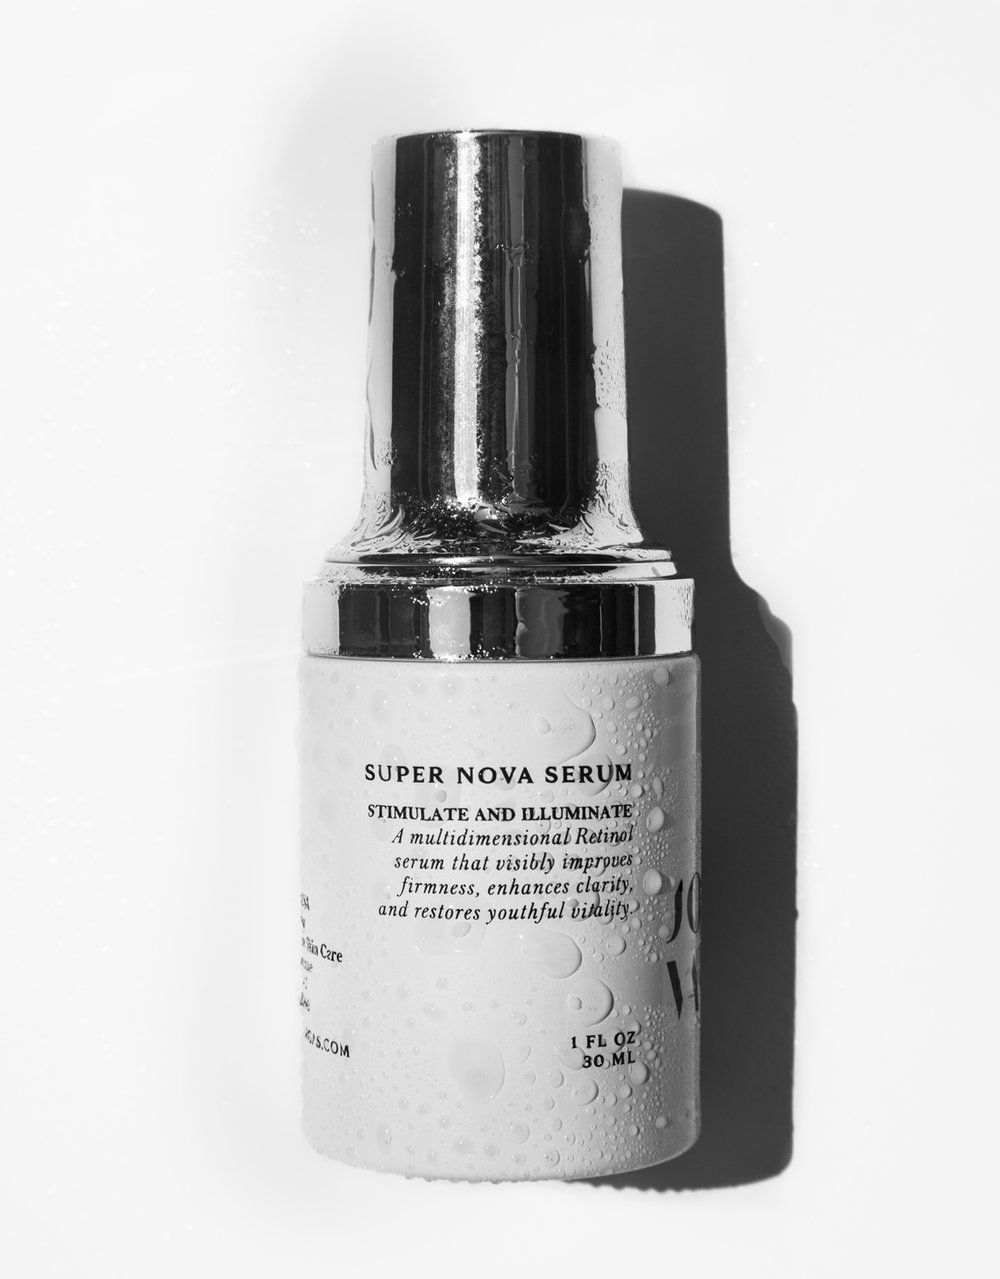 katrina-eugenia-photography-product-photography-nyc-joanna-vargas-skincare-super-nova-serum-vitamin-c-serum-daily-hydrating-cream-rejuvinating-serum-rescue-serum24.jpg